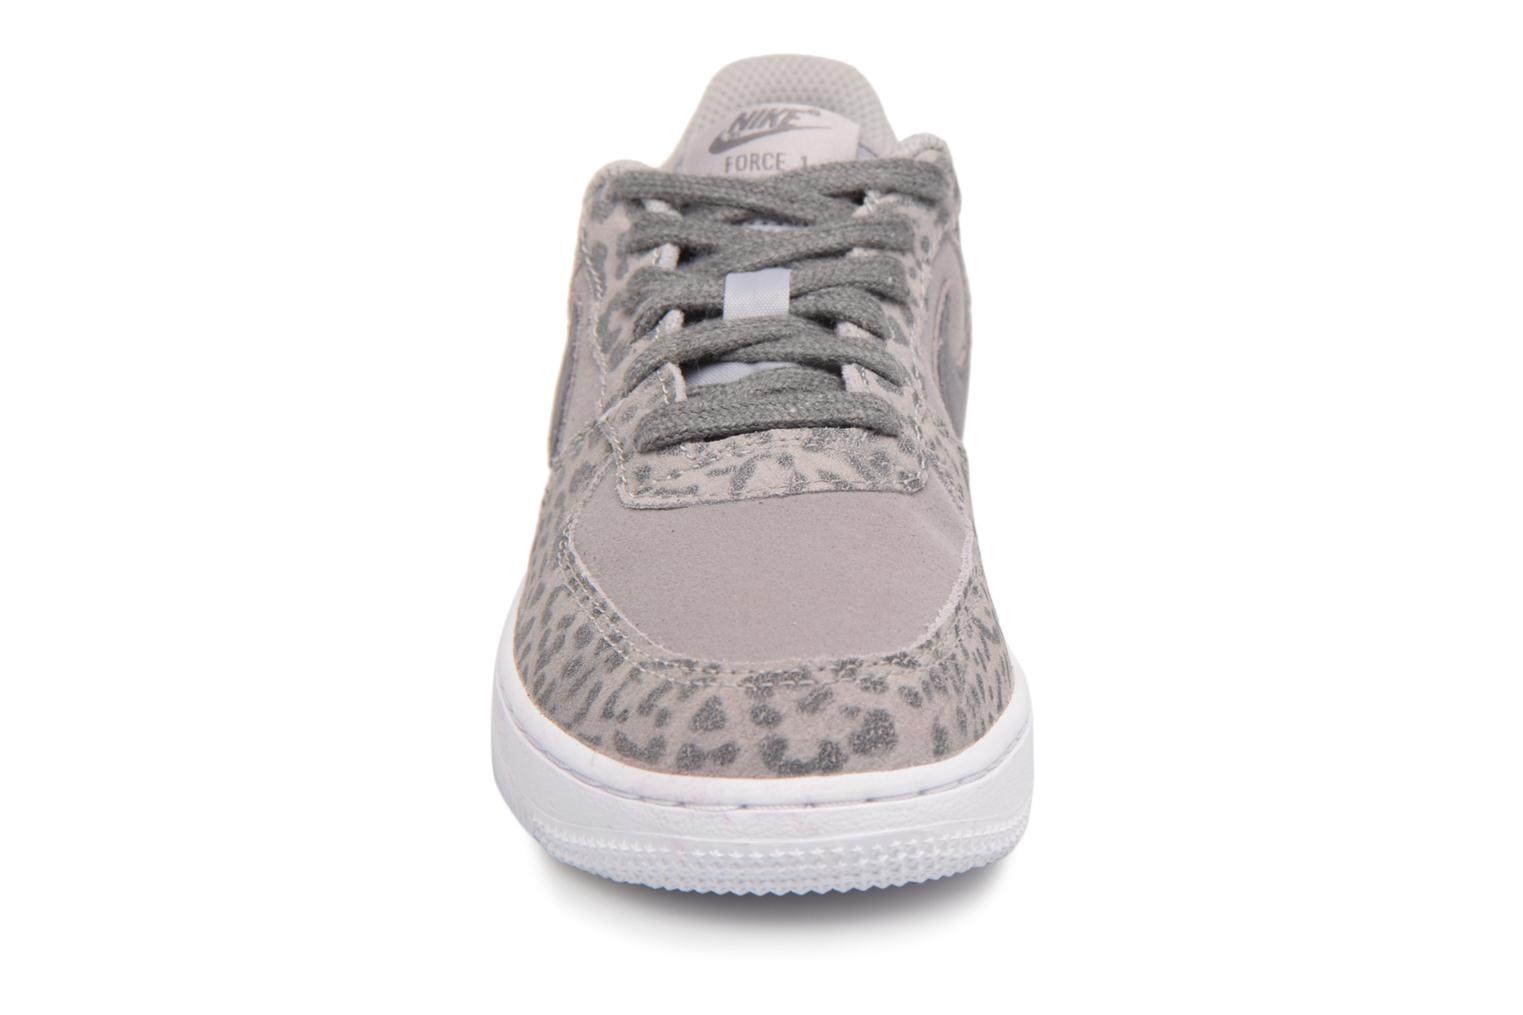 Baskets Nike Nike Force 1 Lv8 (Ps) Gris vue portées chaussures